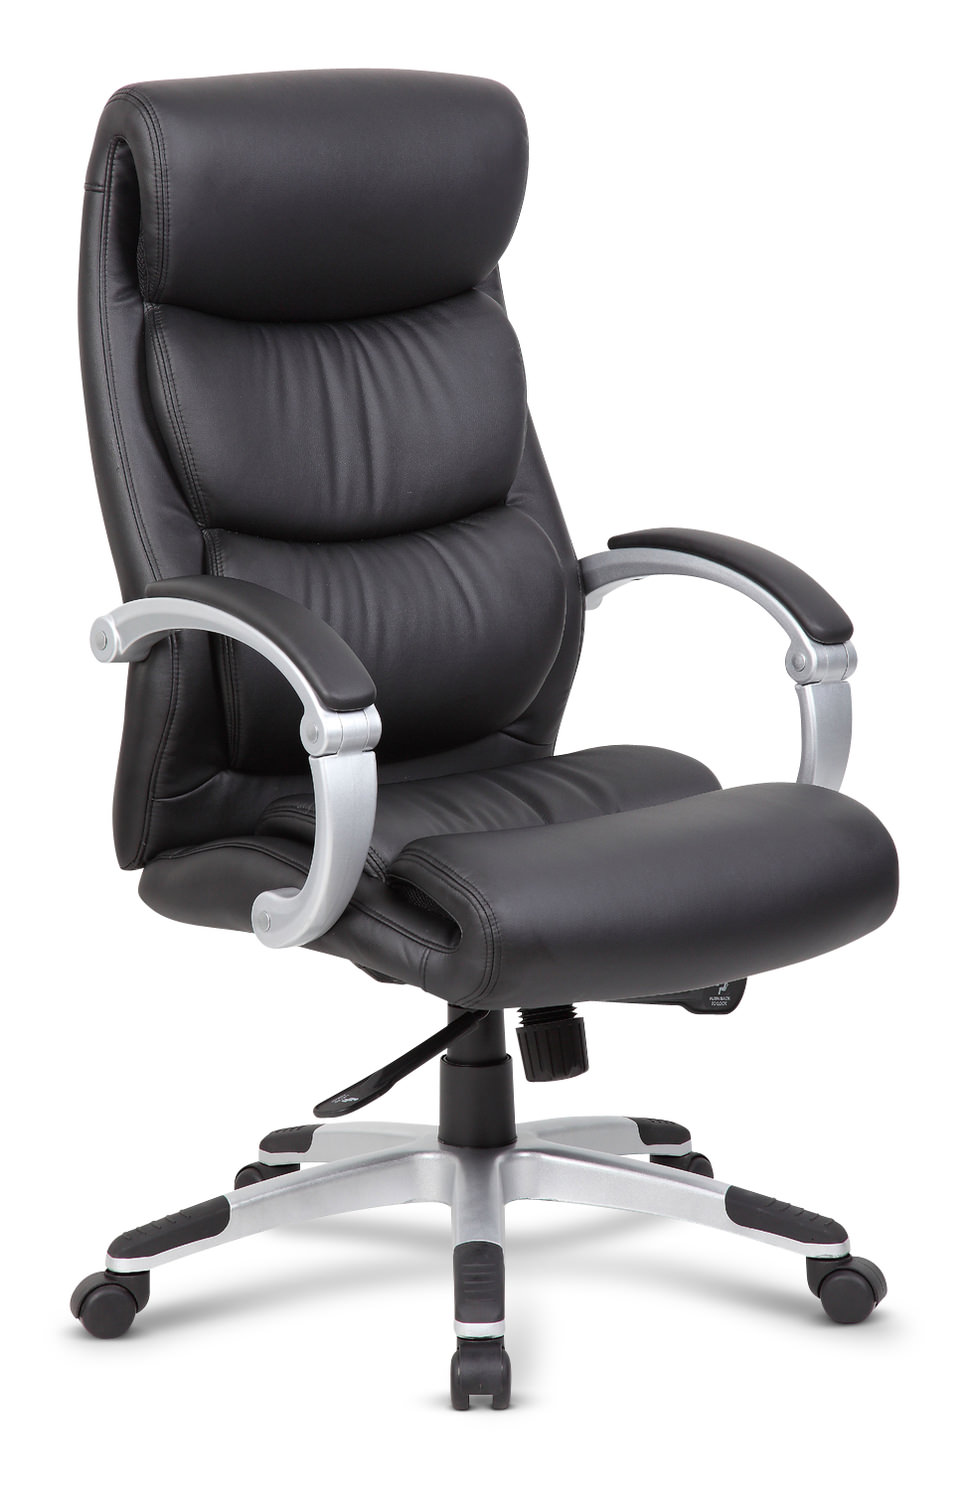 Executive Black Hinged Arm Office Chair By Hom Furniture